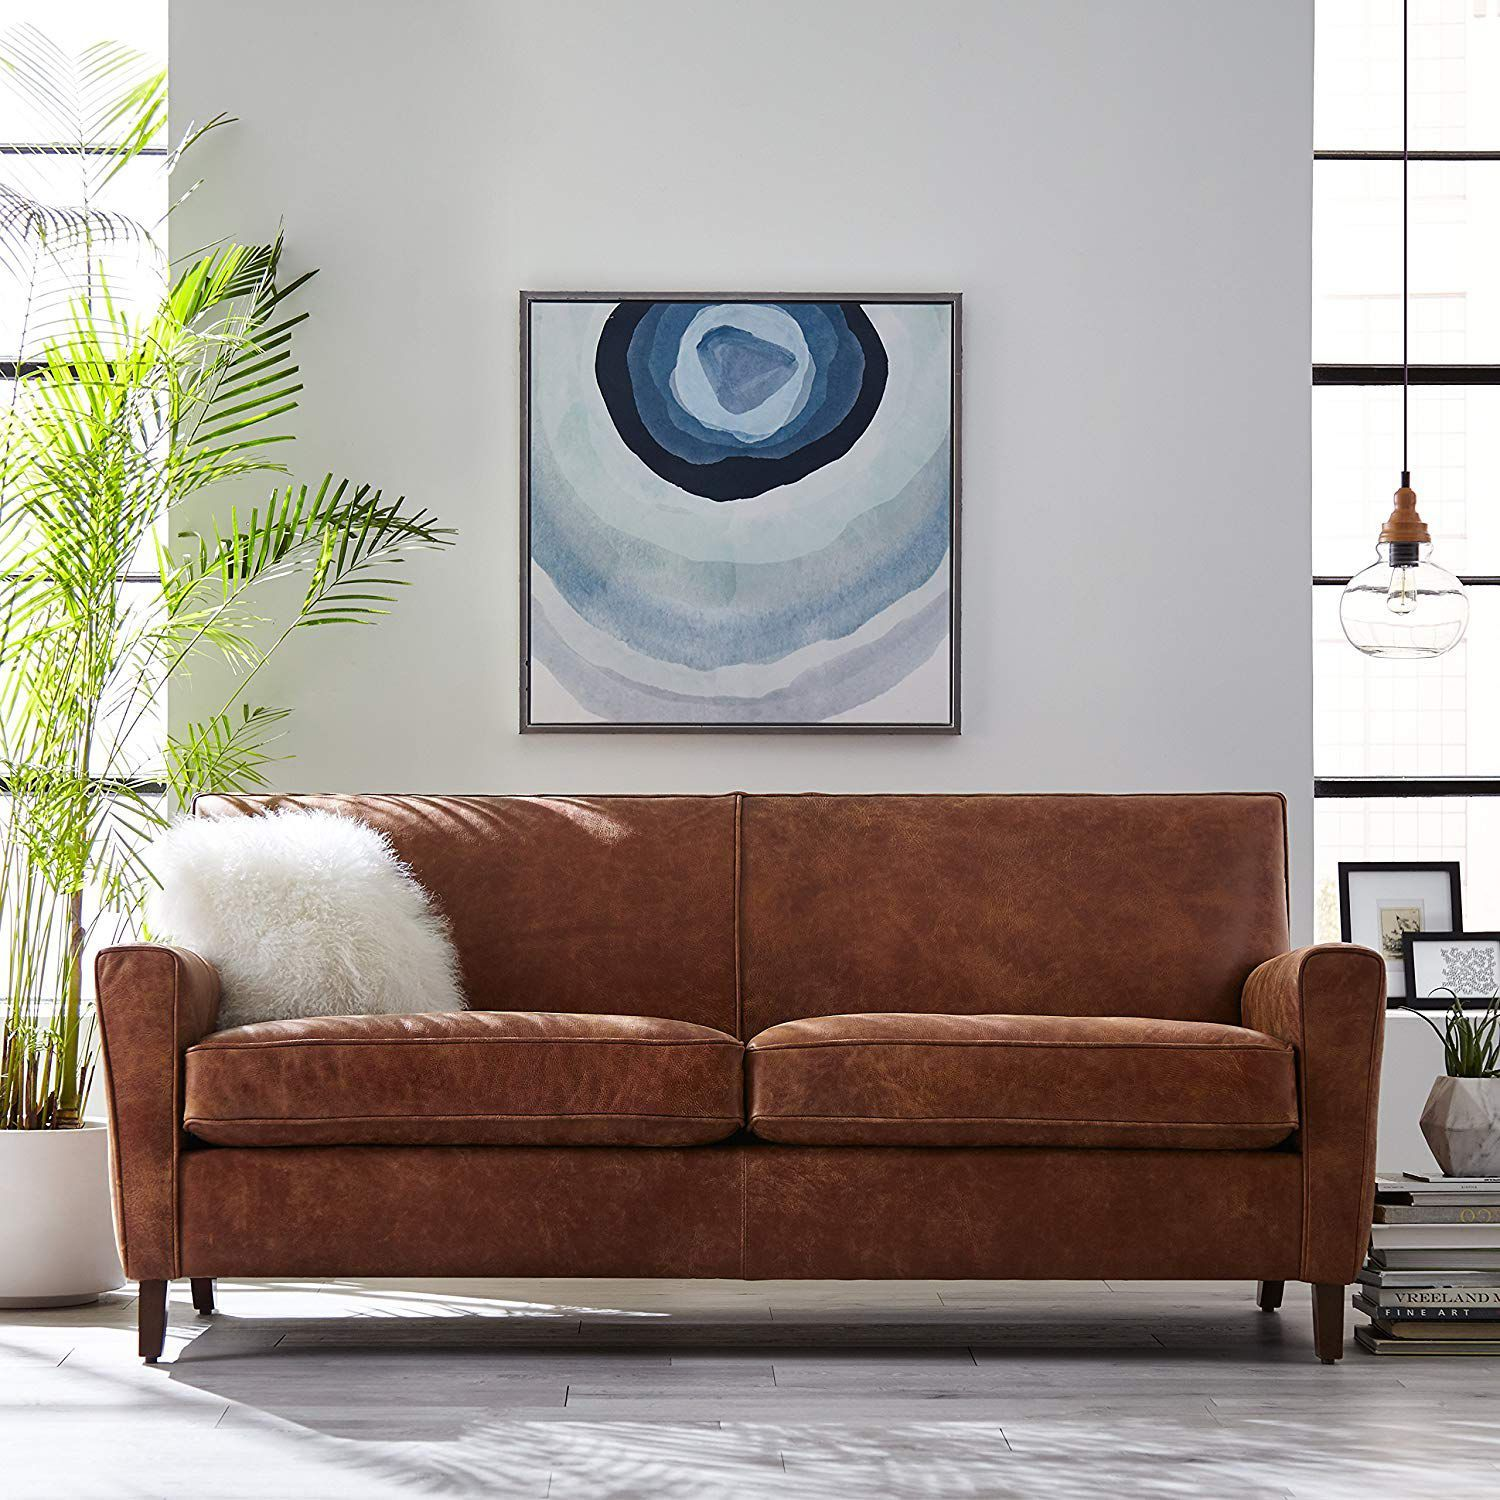 Sofa Couch Rivet Lawson Modern Angled Leather Sofa